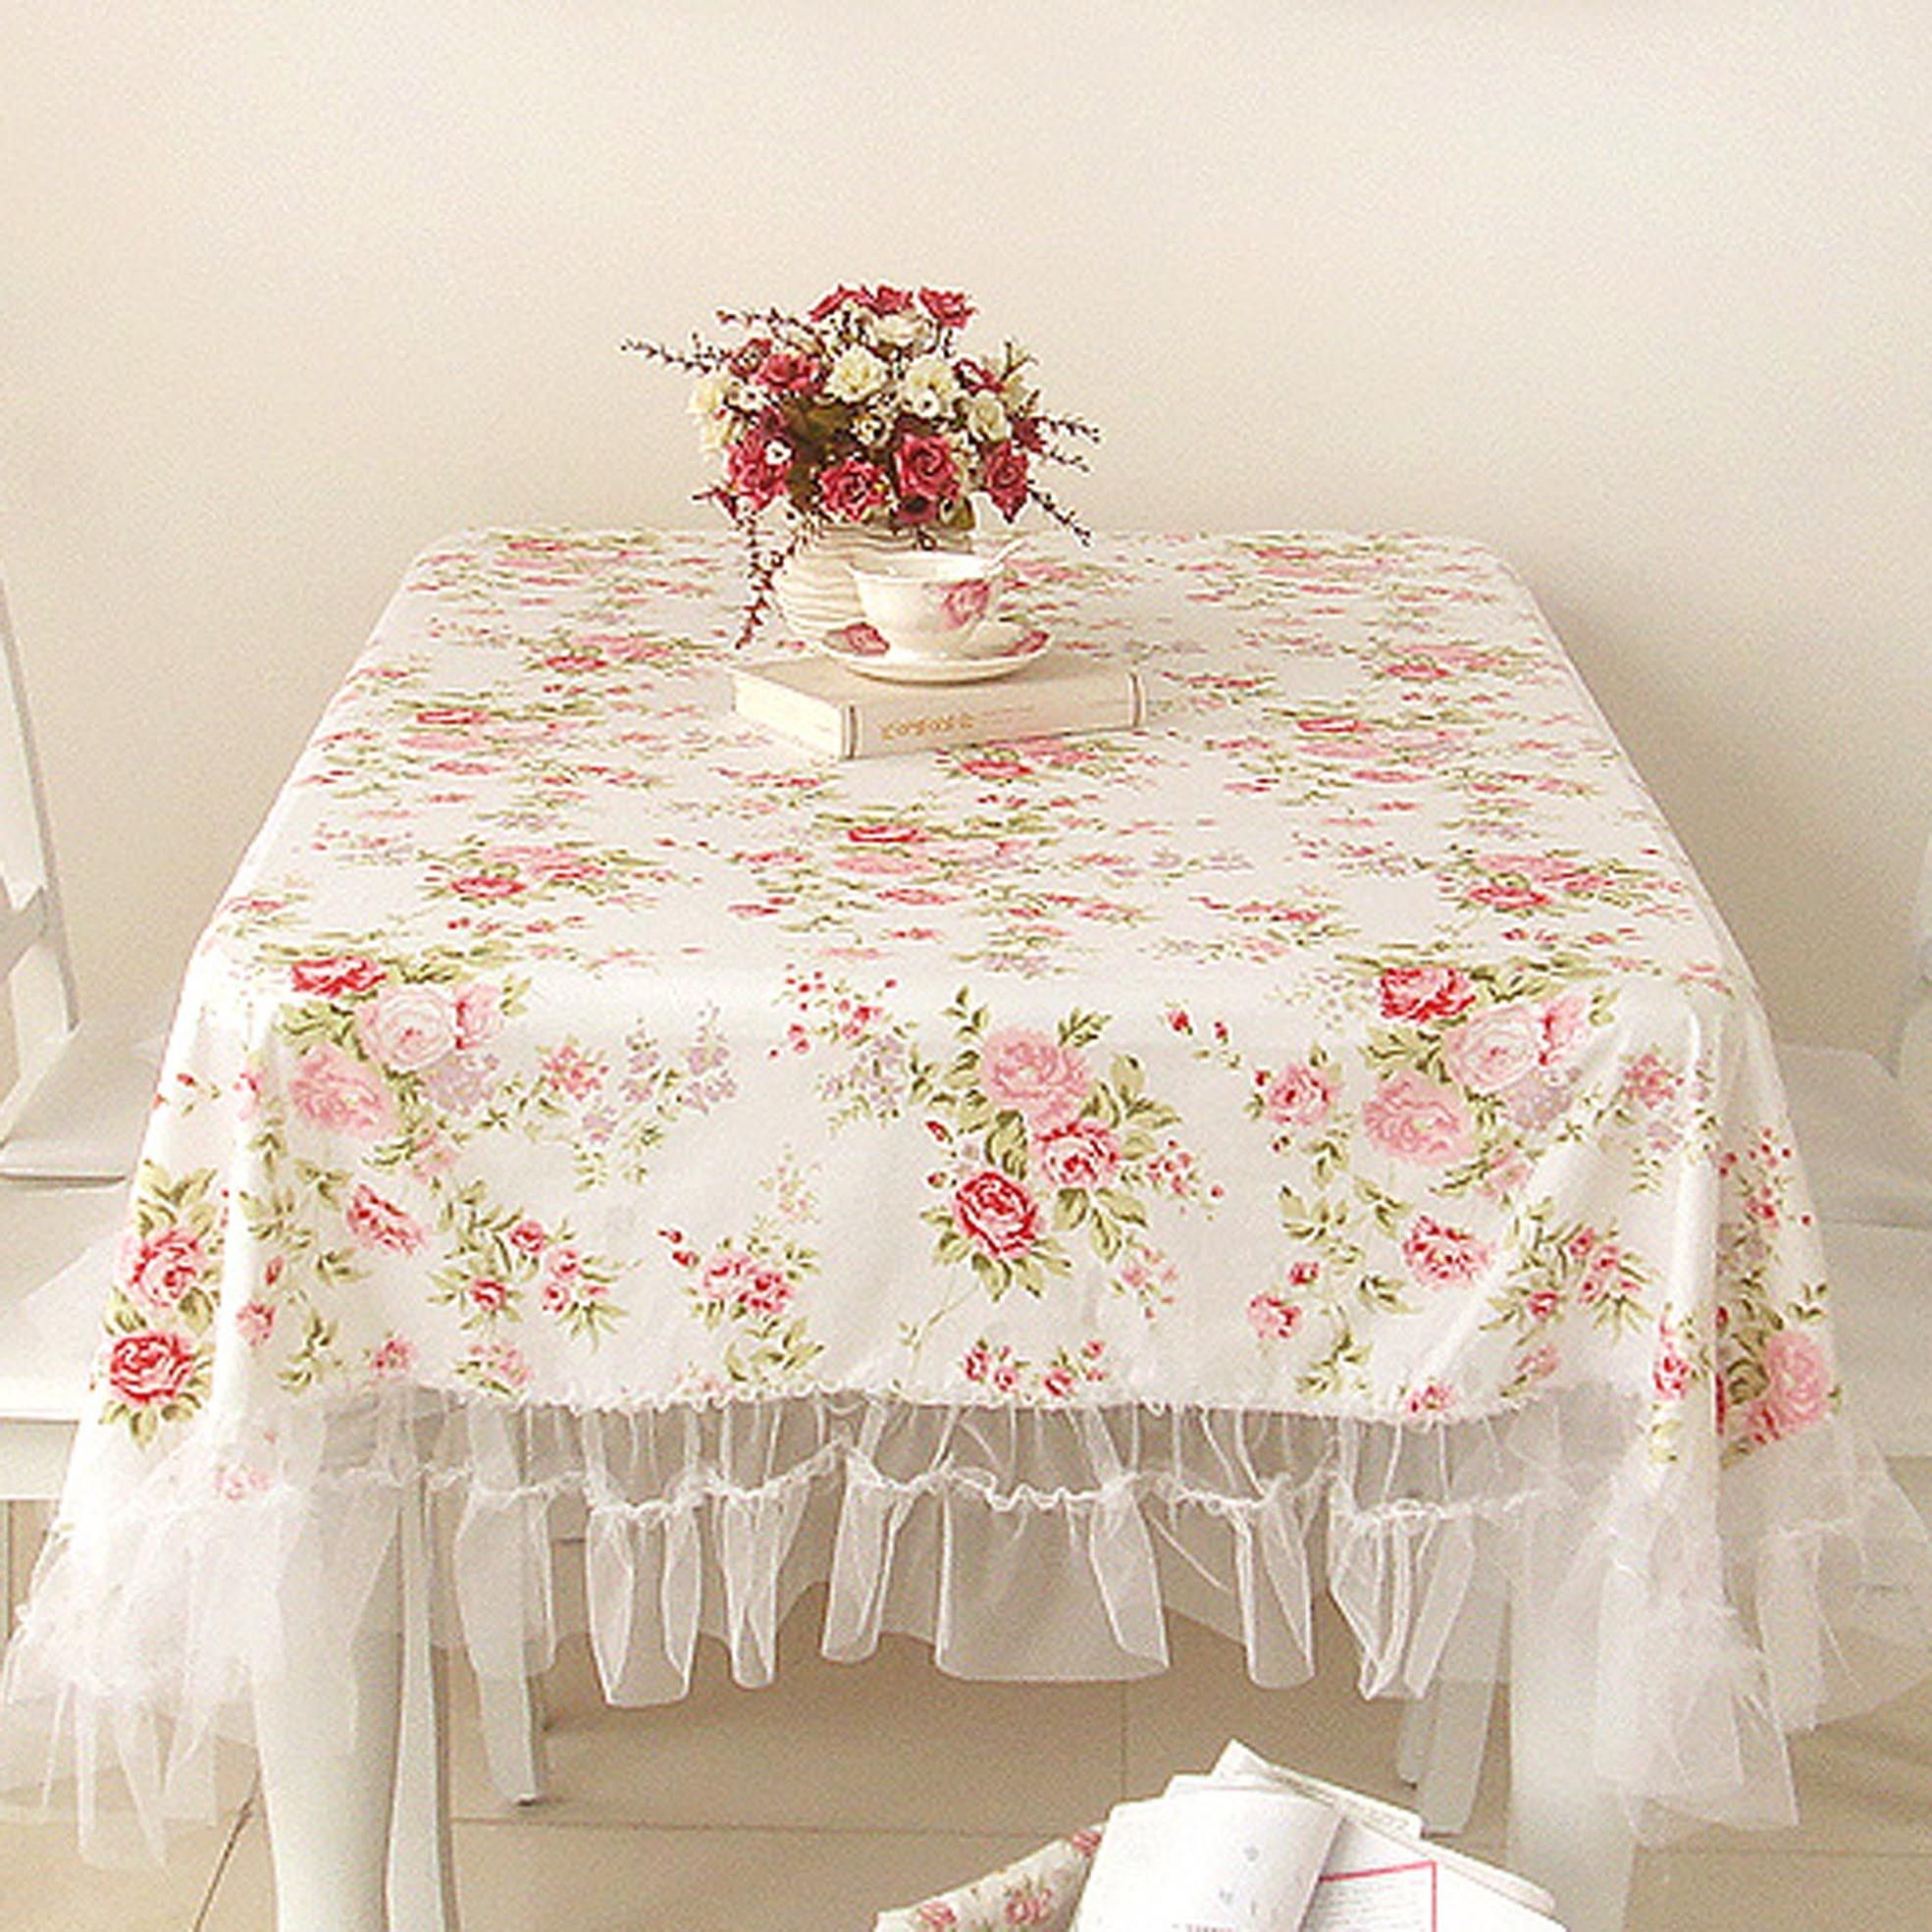 oblong tablecloth